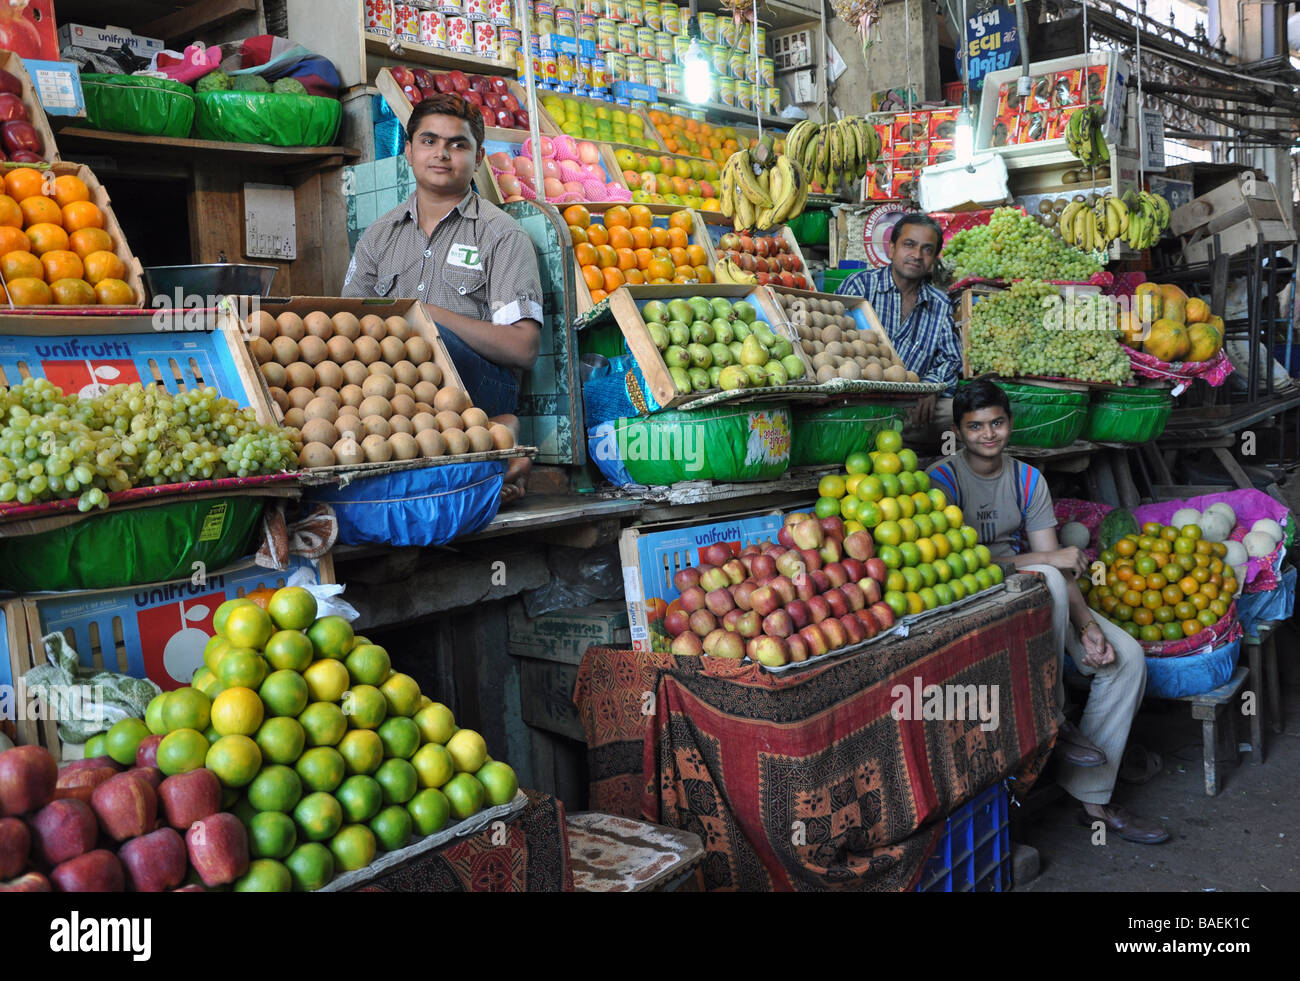 A quiet Afternoon at Ahmedabad Fruit & Vegetable Market - Stock Image